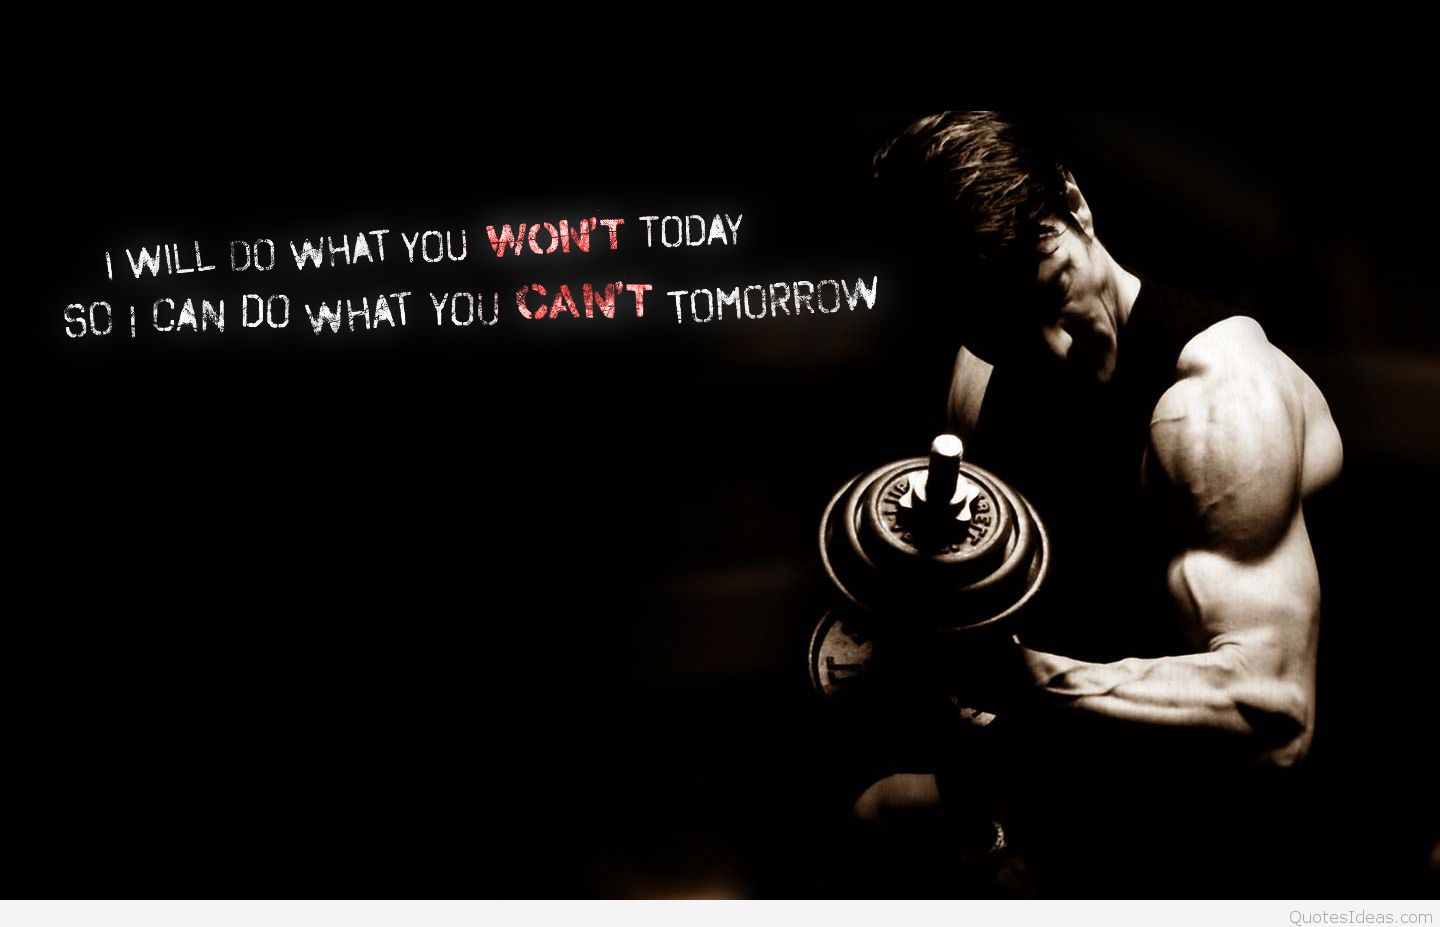 Fitness Wallpaper With Quote Love My Gym Quotes 1440x927 Download Hd Wallpaper Wallpapertip